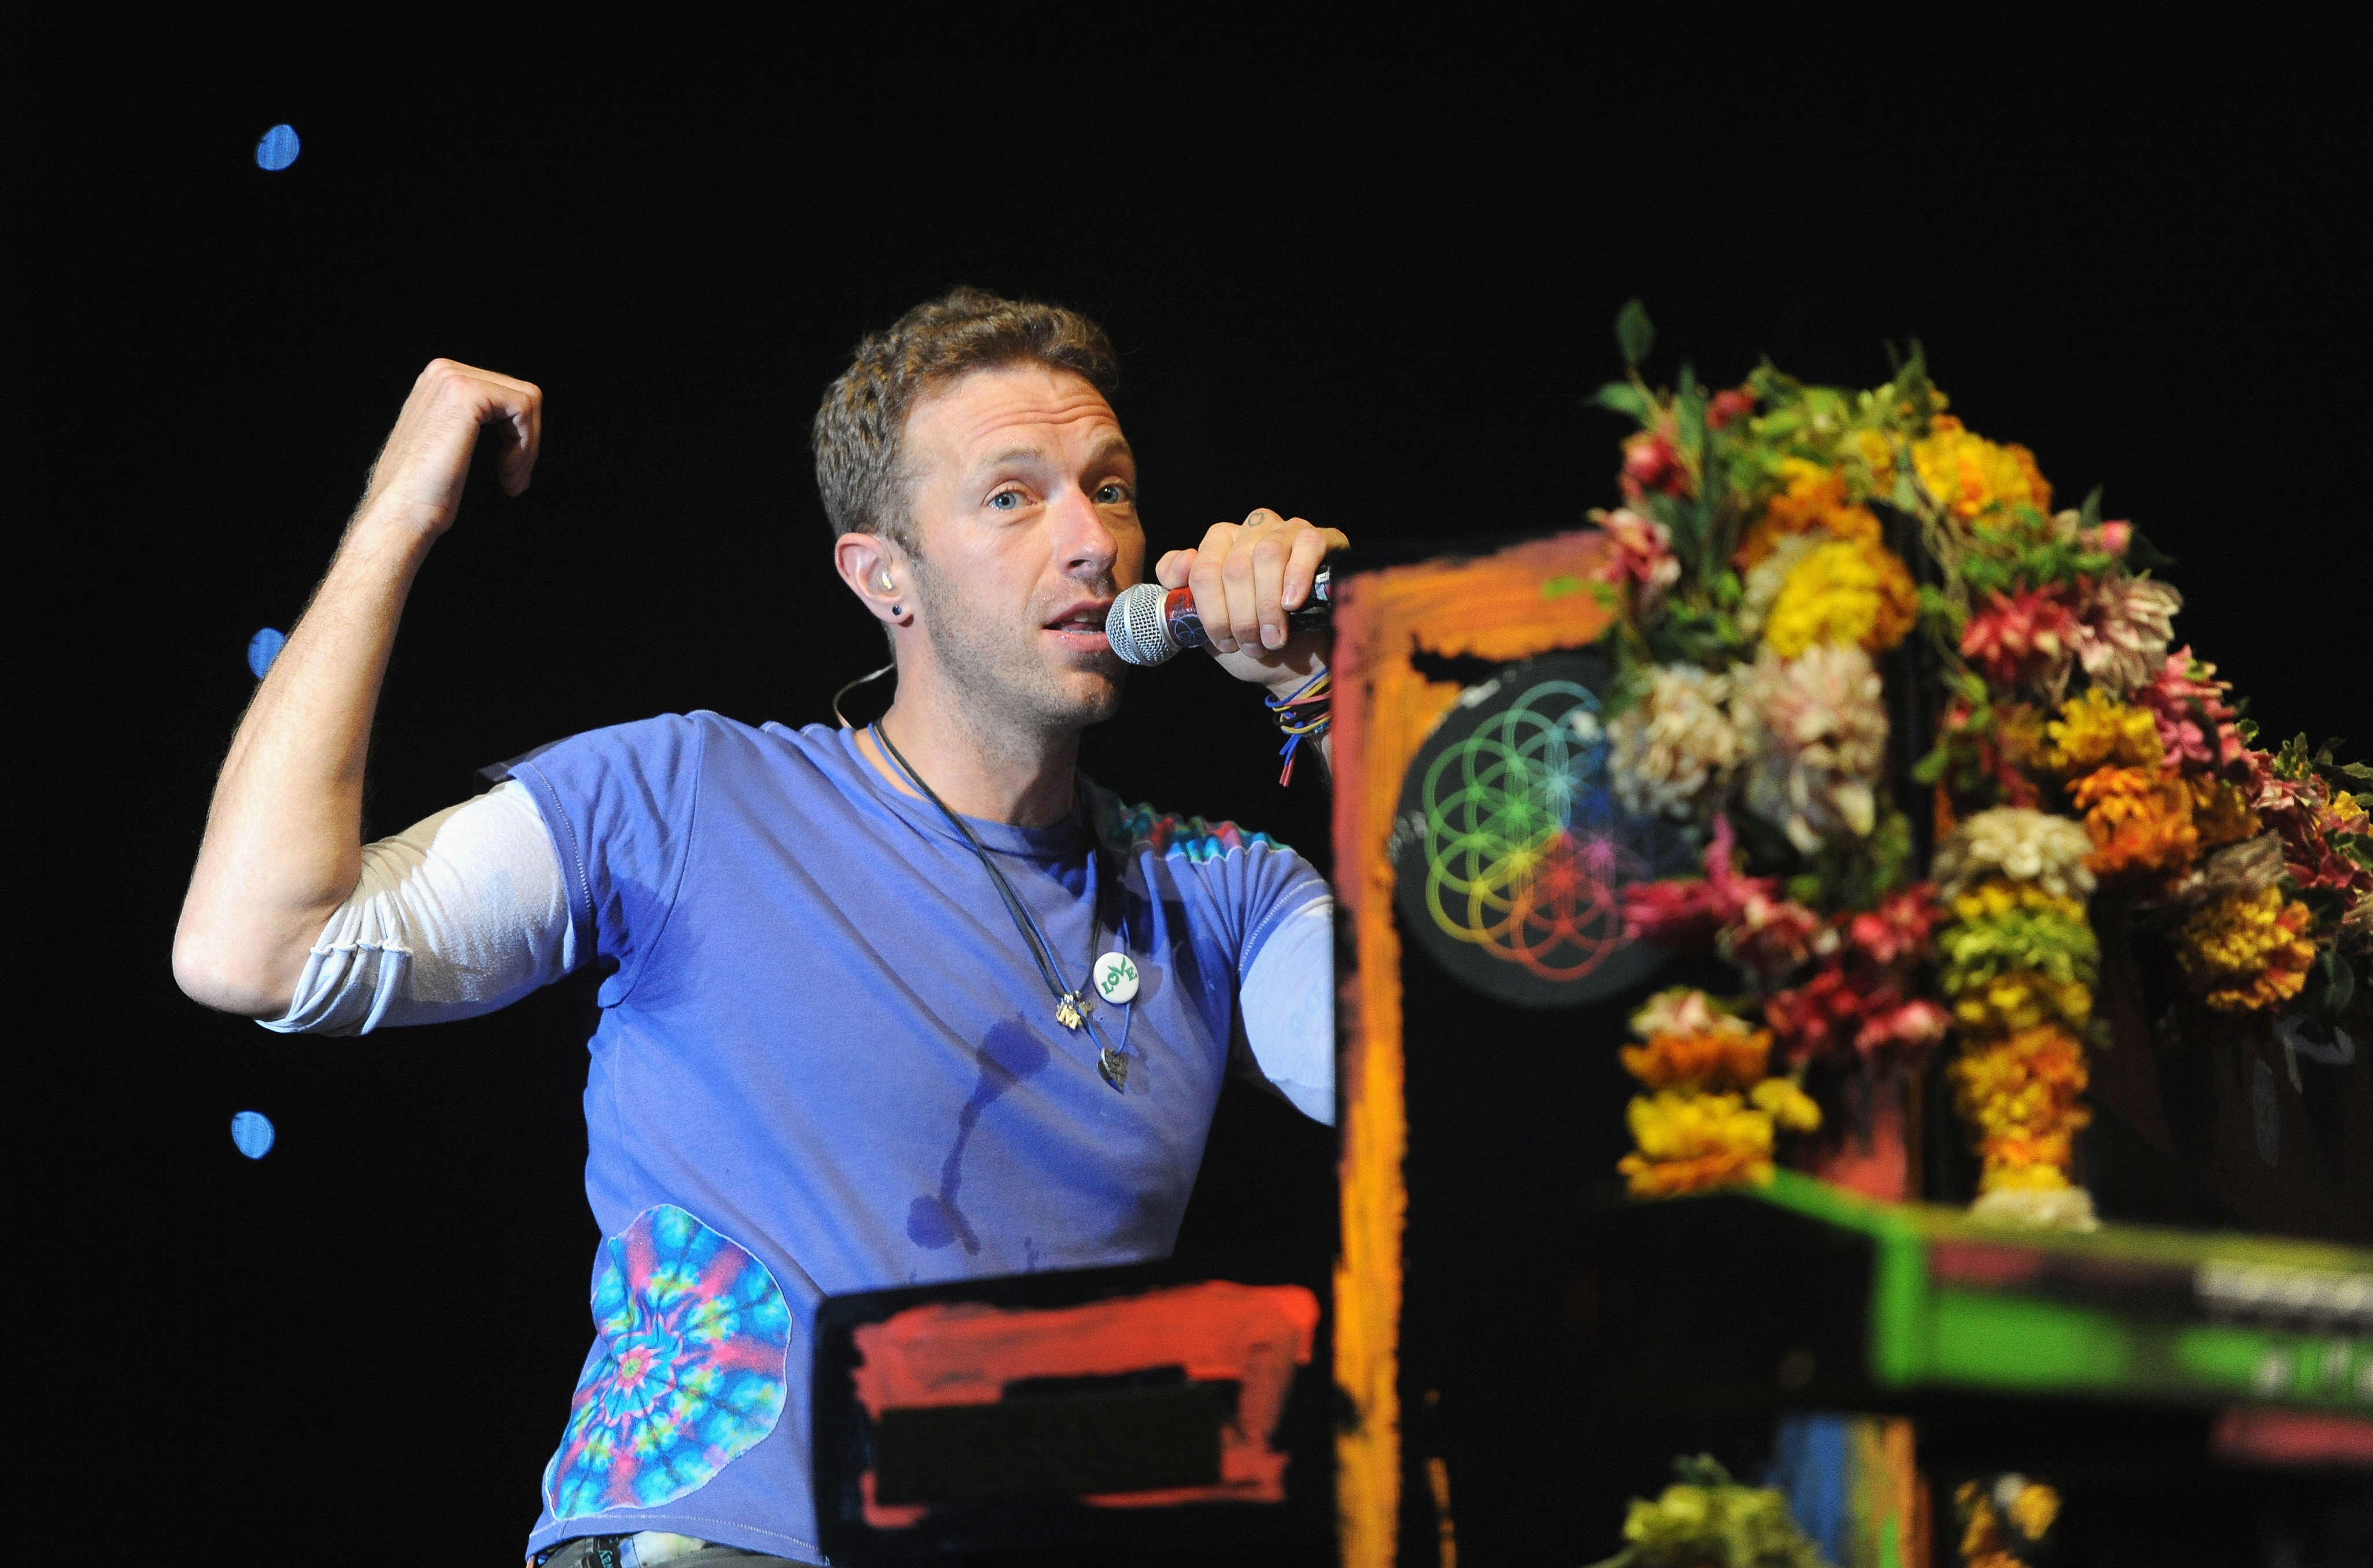 GettyImages 543491684 Heres What Chris Martin Did When A Fan Begged Him For Sex